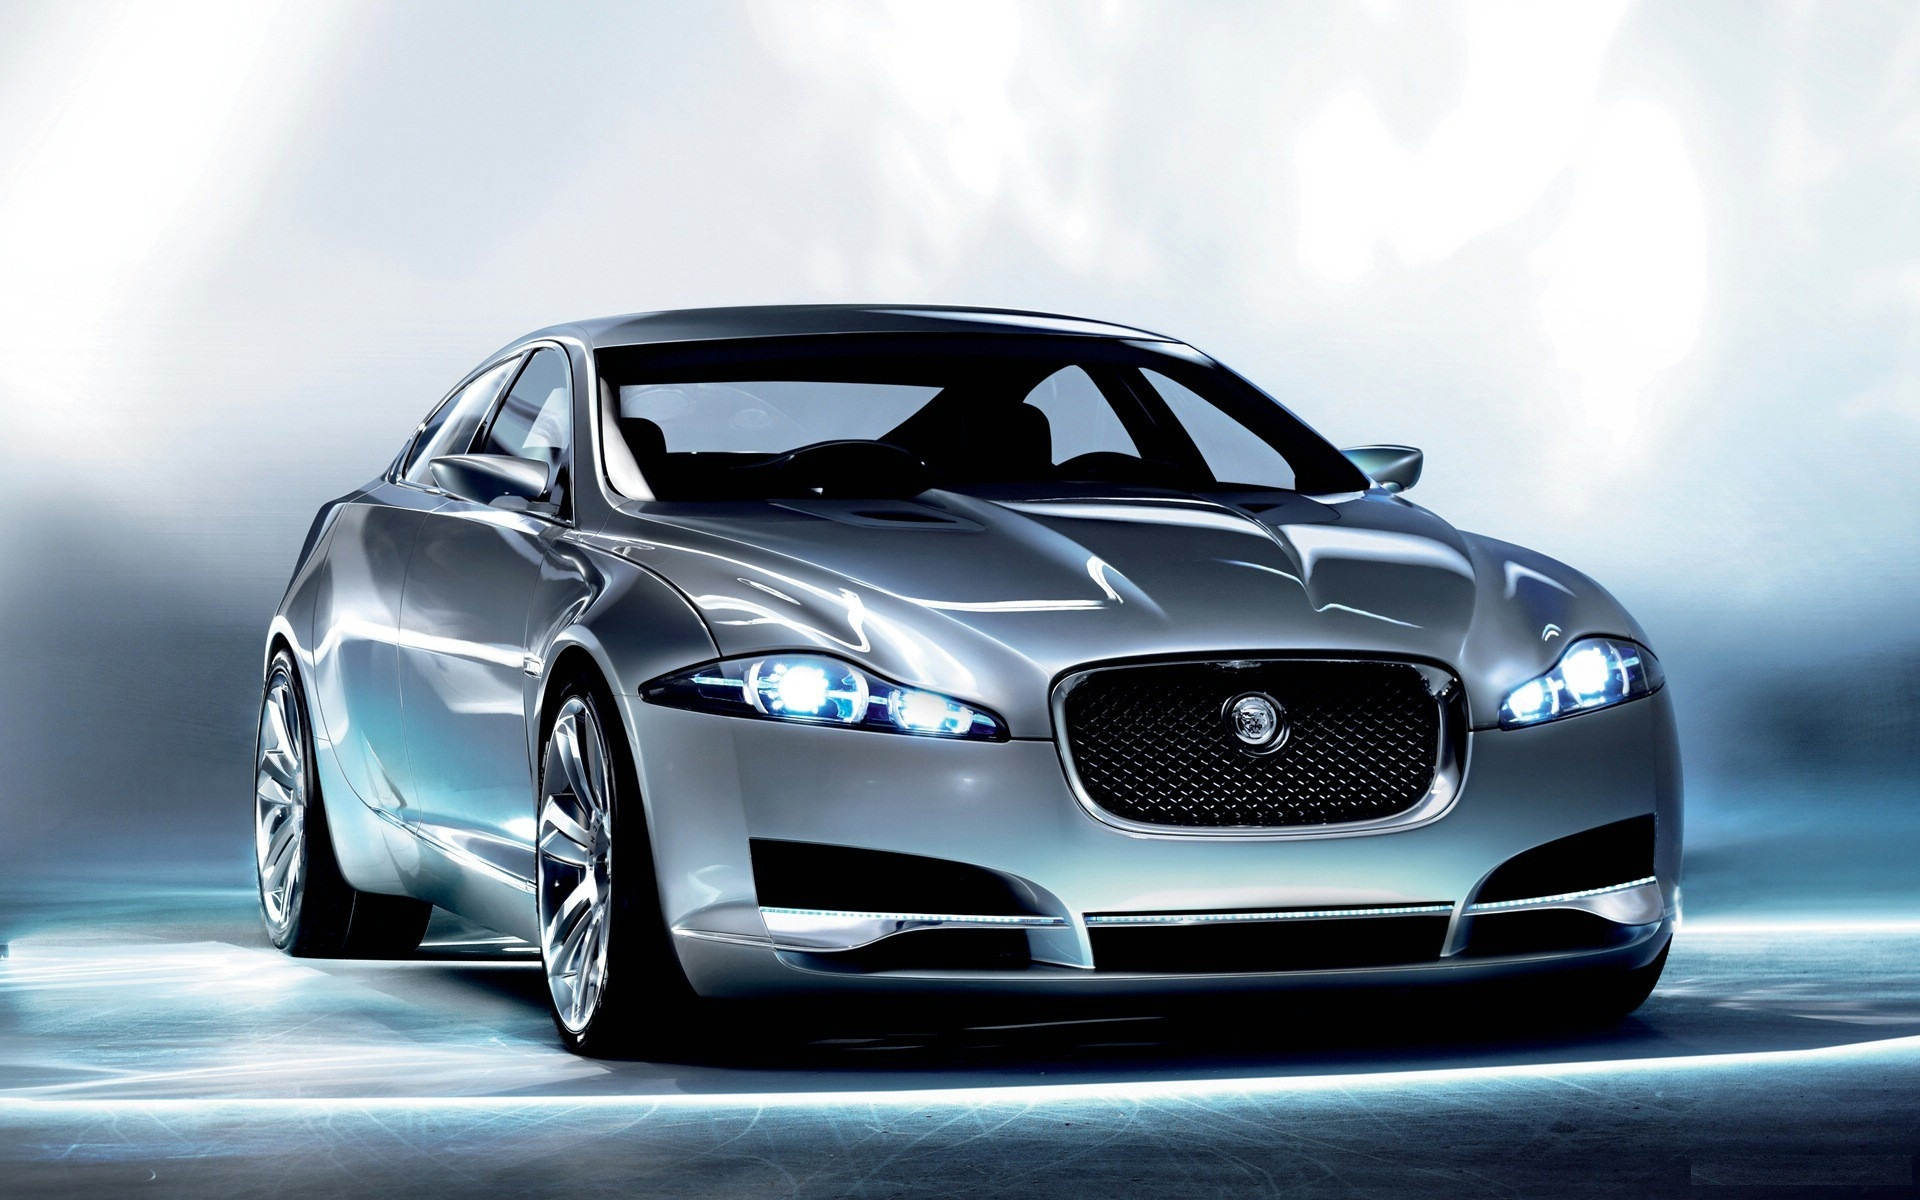 Etonnant Jaguar Car HD Wallpapers